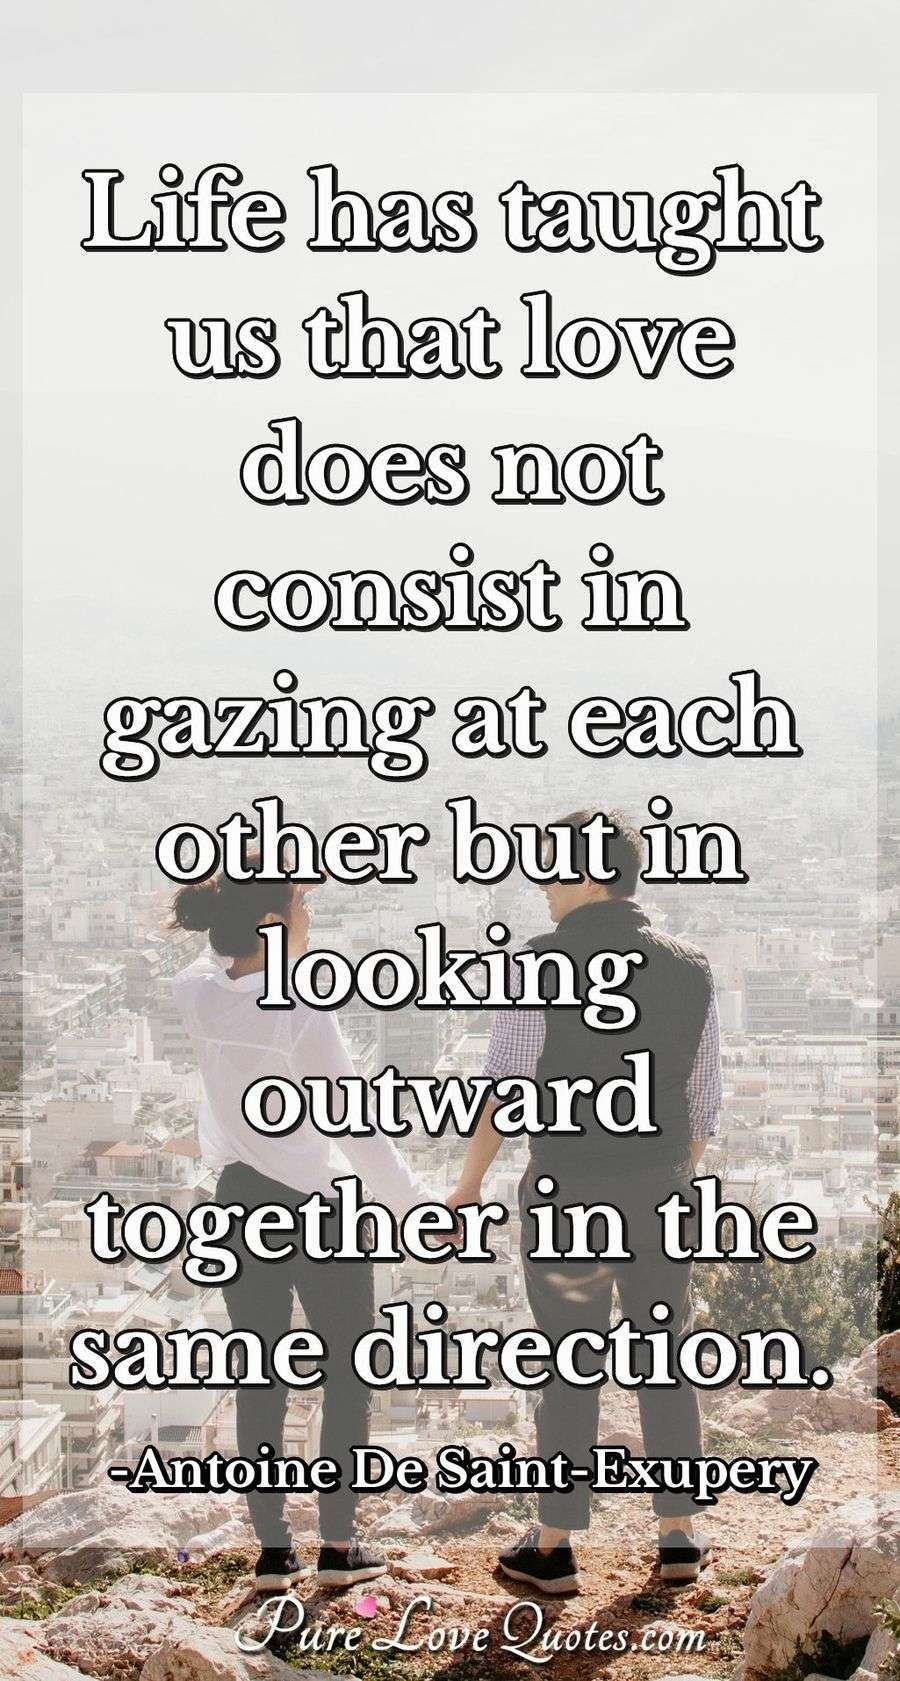 Life has taught us that love does not consist in gazing at each other but in looking outward together in the same direction. - Antoine De Saint-Exupery